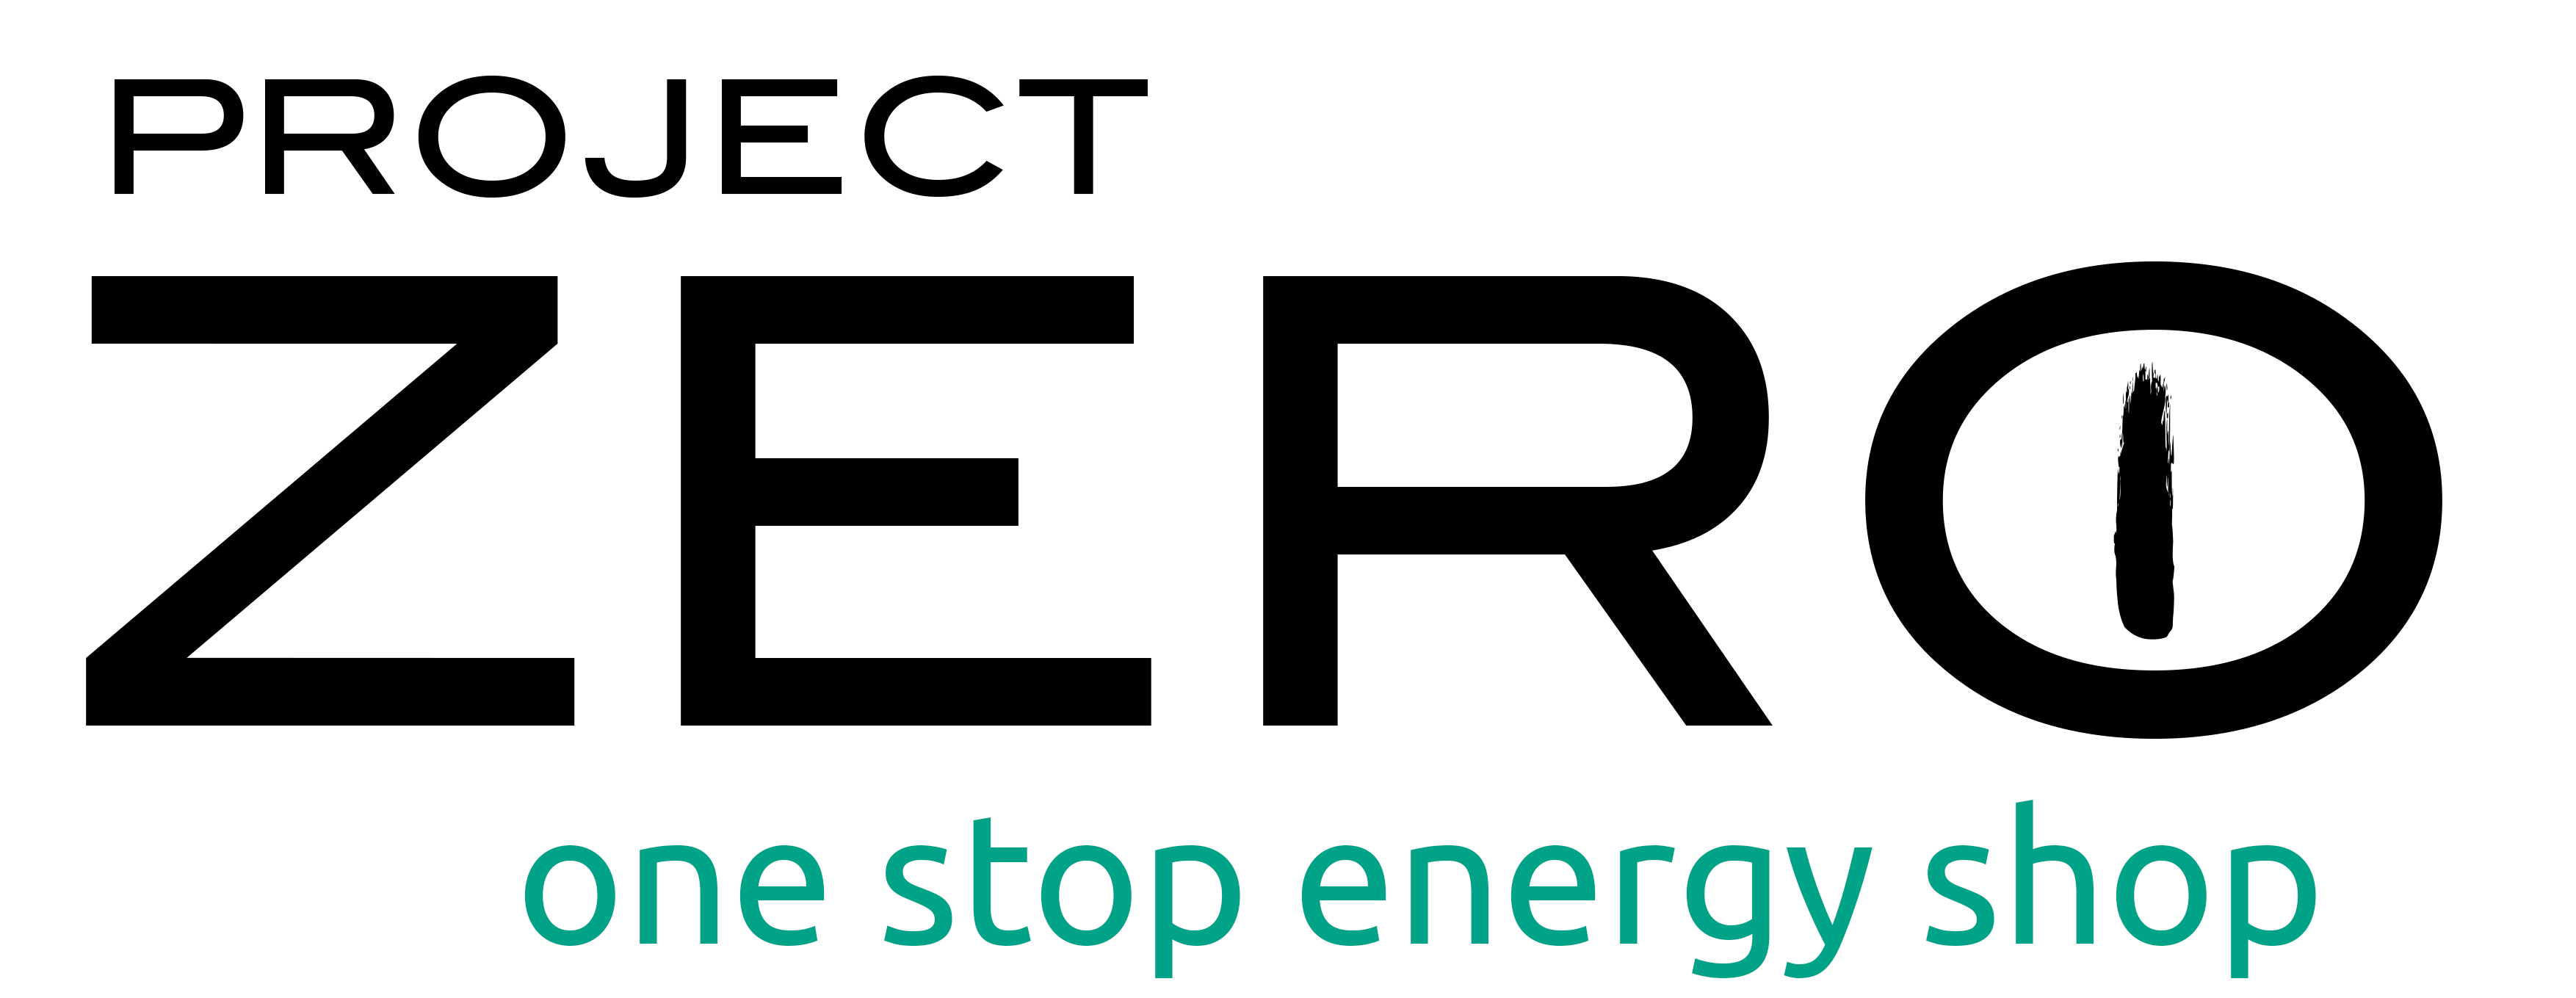 Logo of PROJECT ZERO